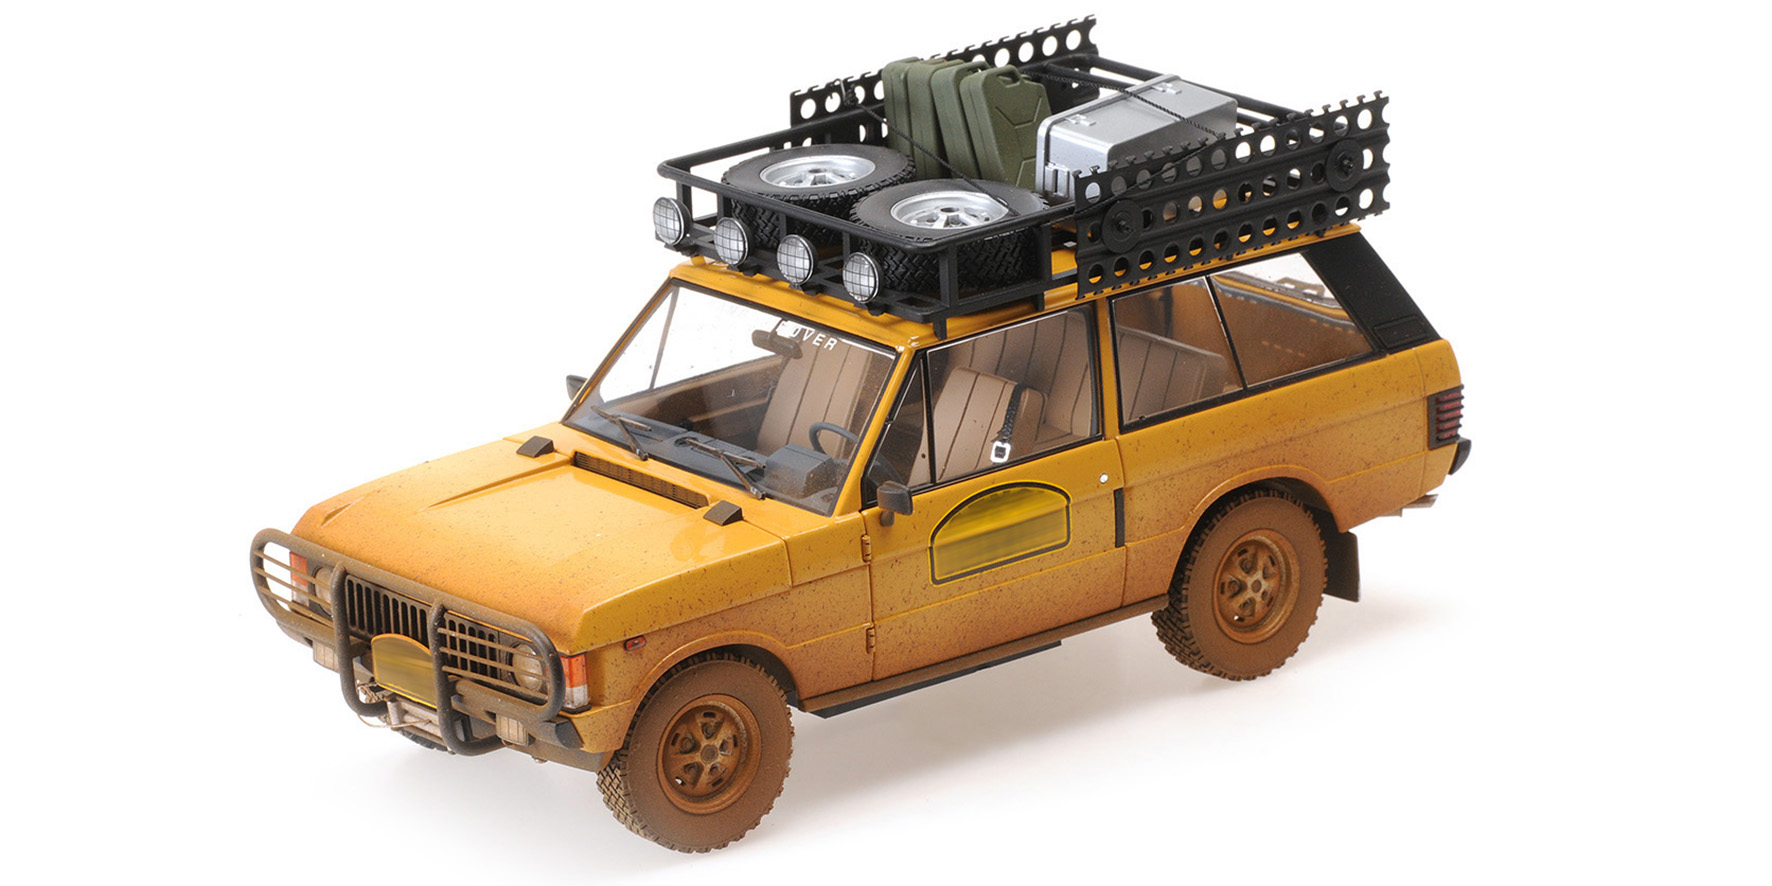 Range Rover Camel Trophy Papua New Guinea 1982 Dirty version - 1:18